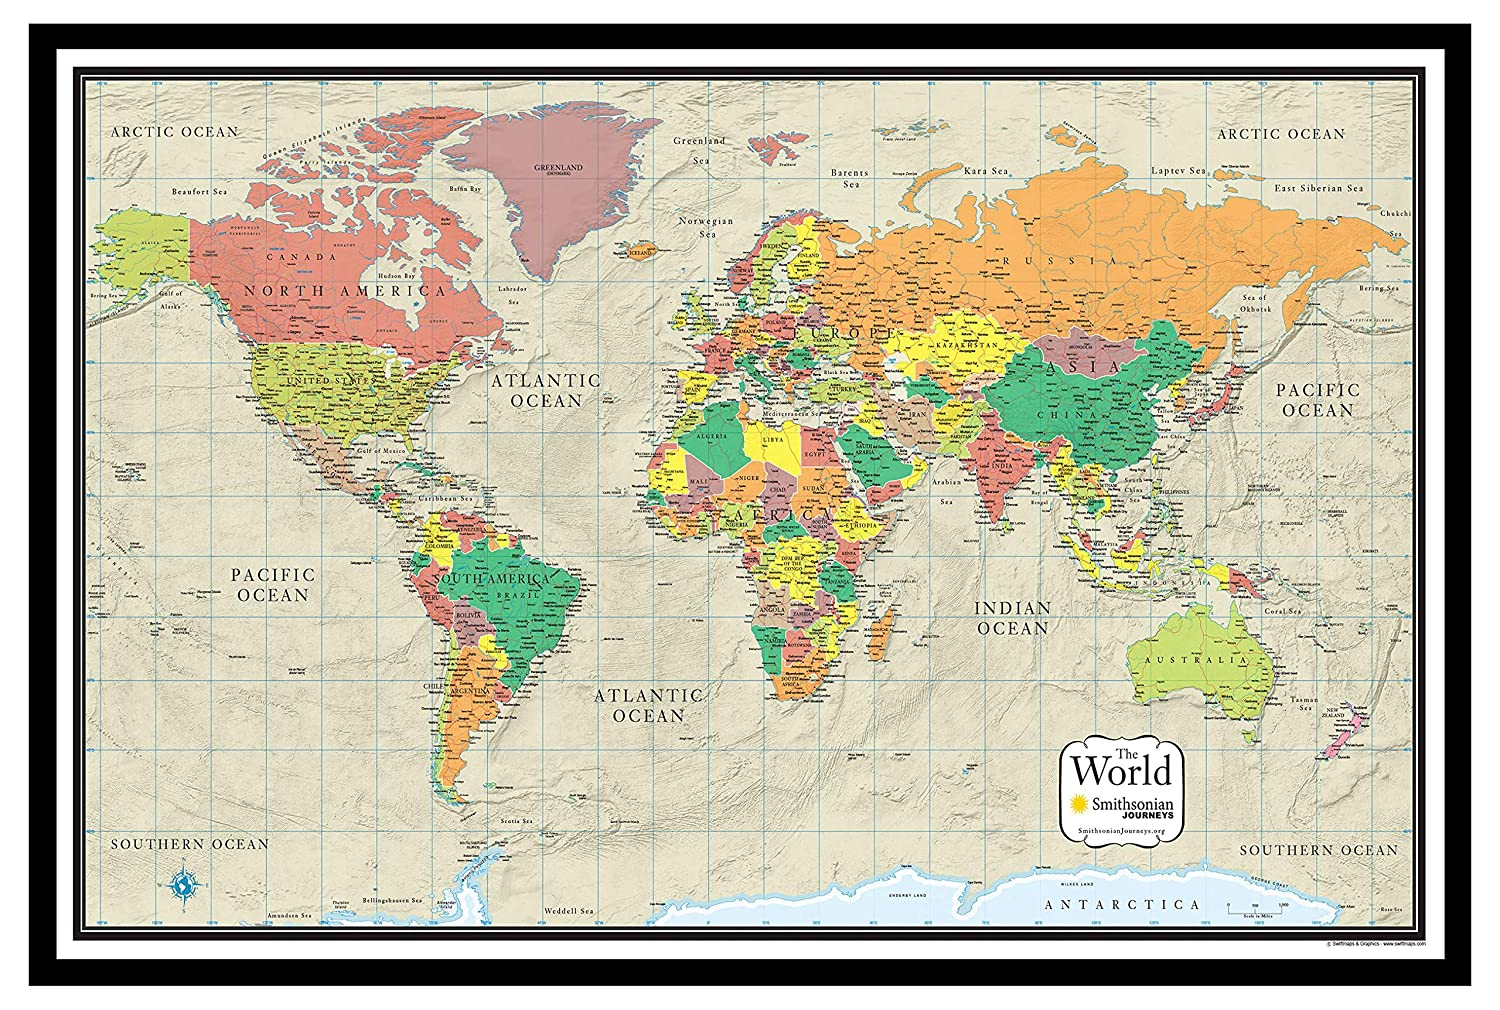 24x36 World Wall Map by Smithsonian Journeys - Tan Oceans Special Edition  (24x36 Paper Folded)